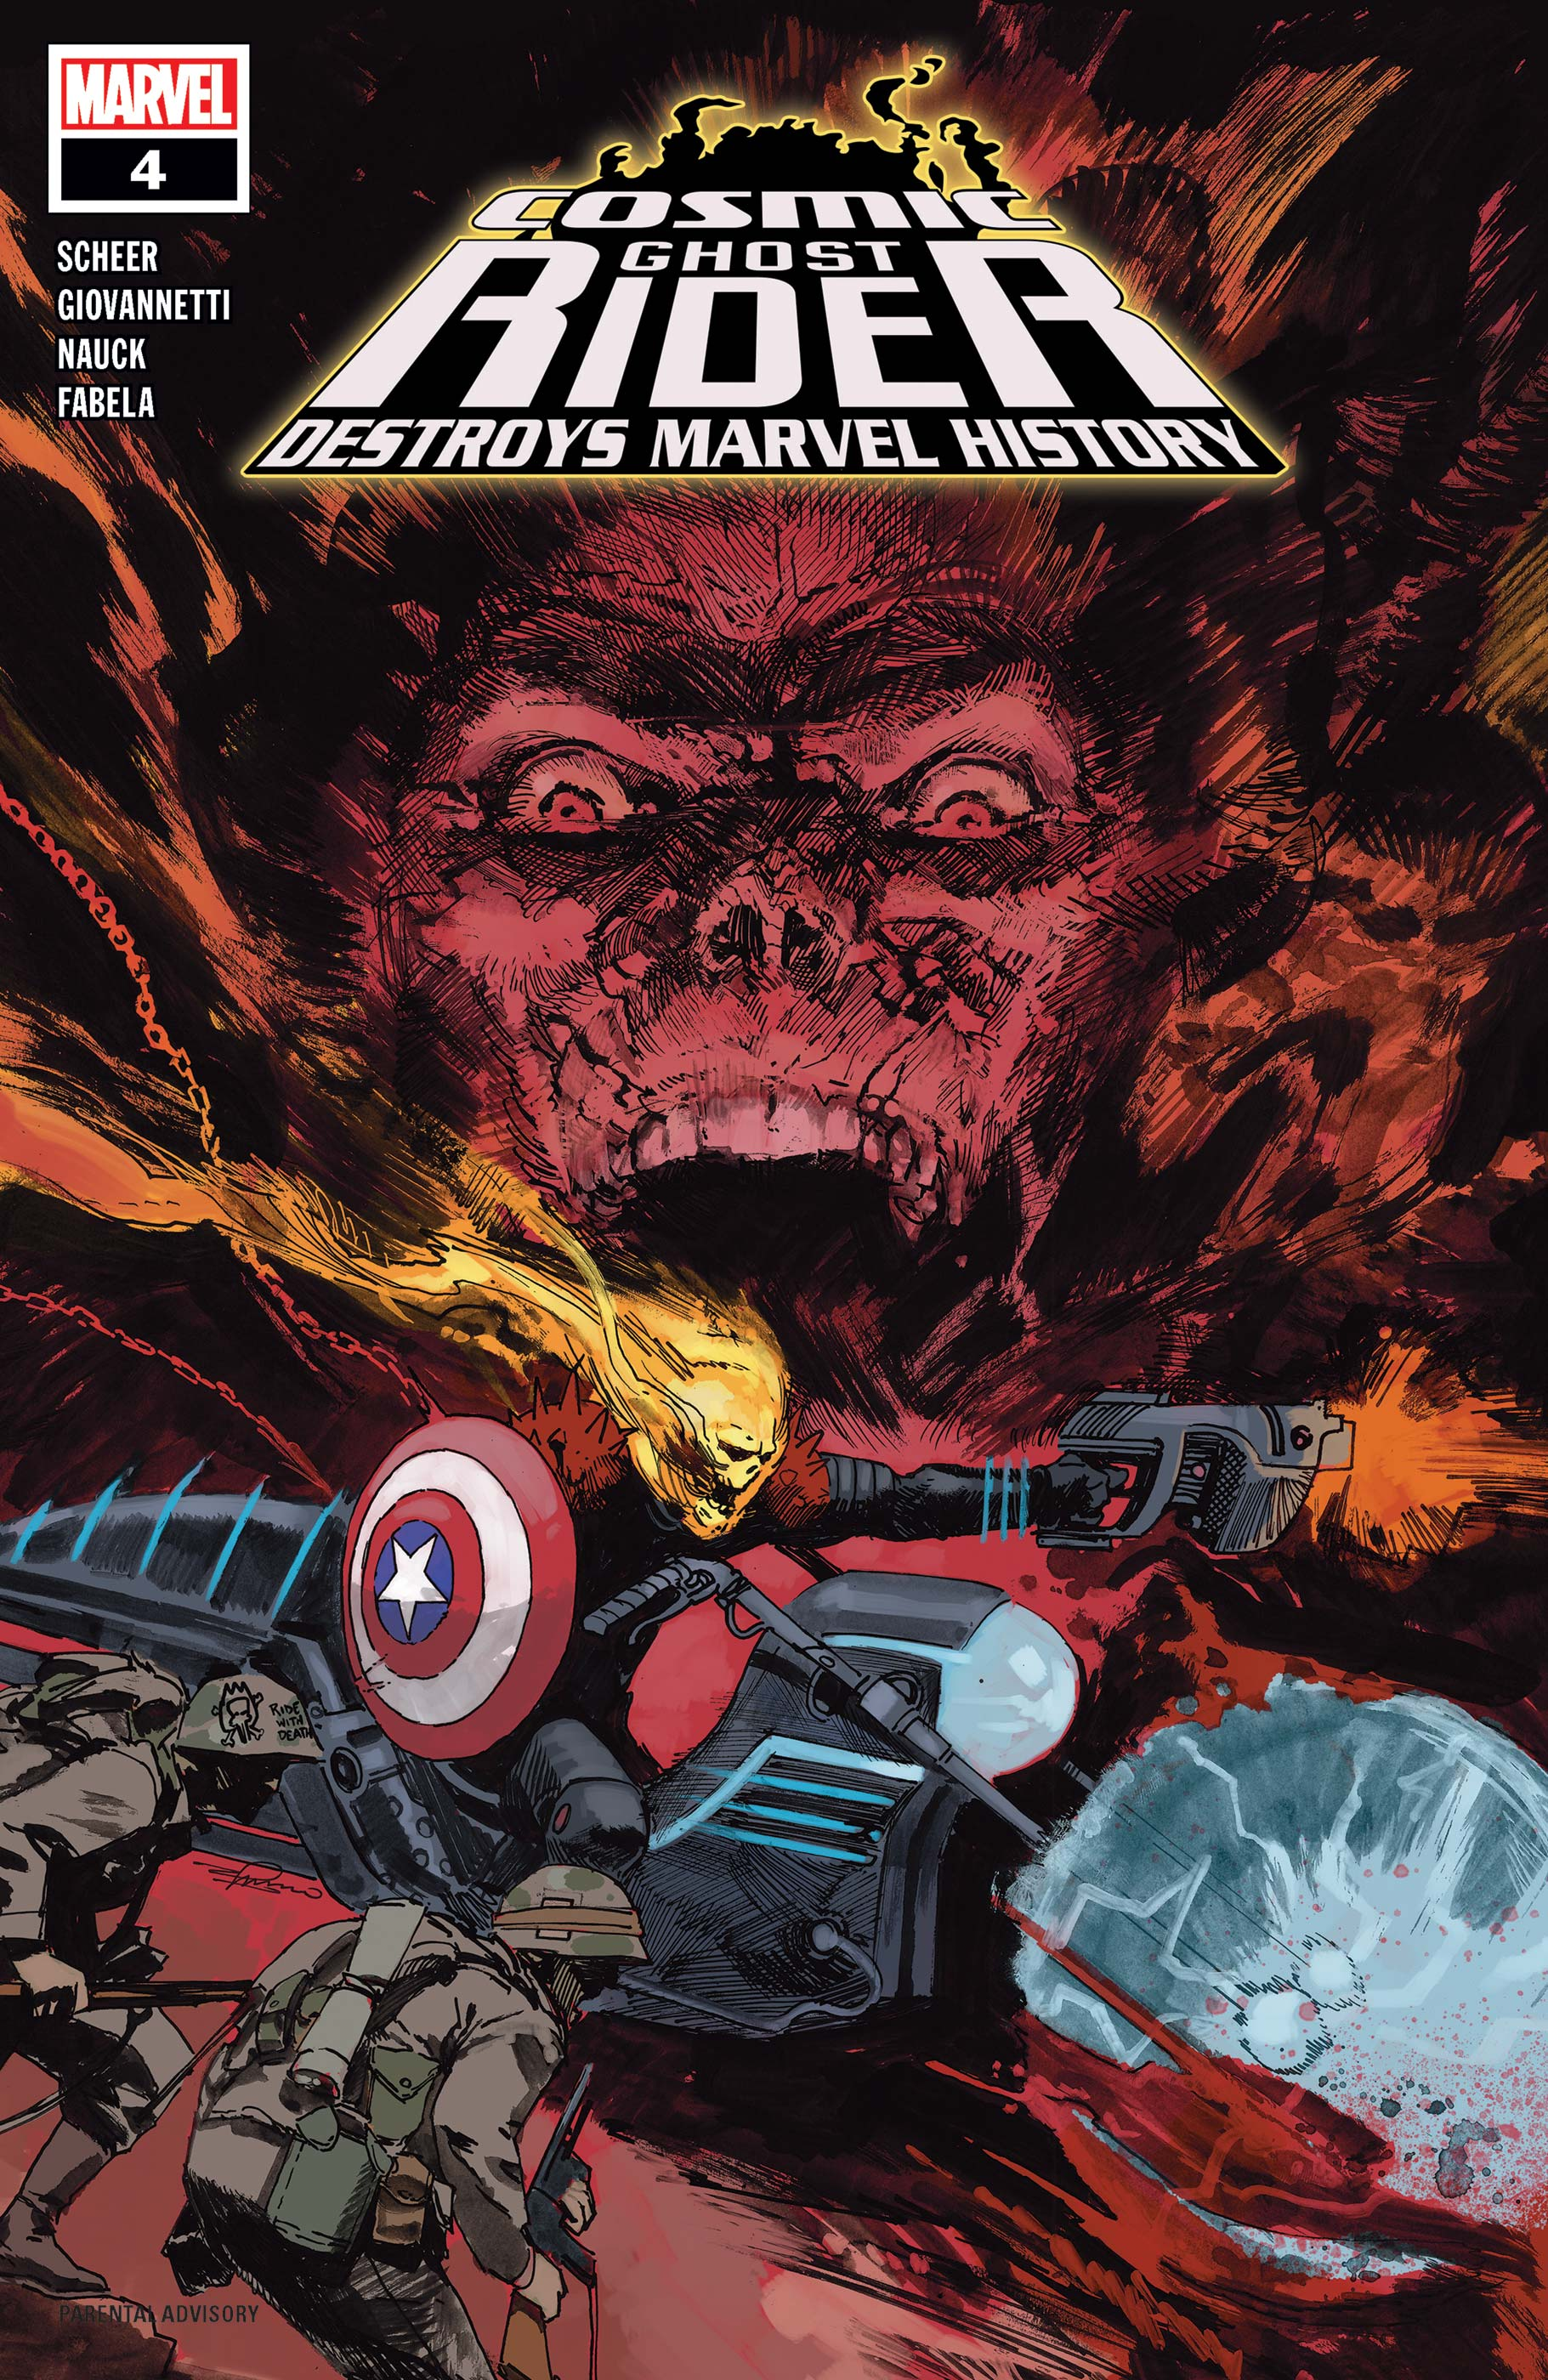 Cosmic Ghost Rider Destroys Marvel History (2019) #4